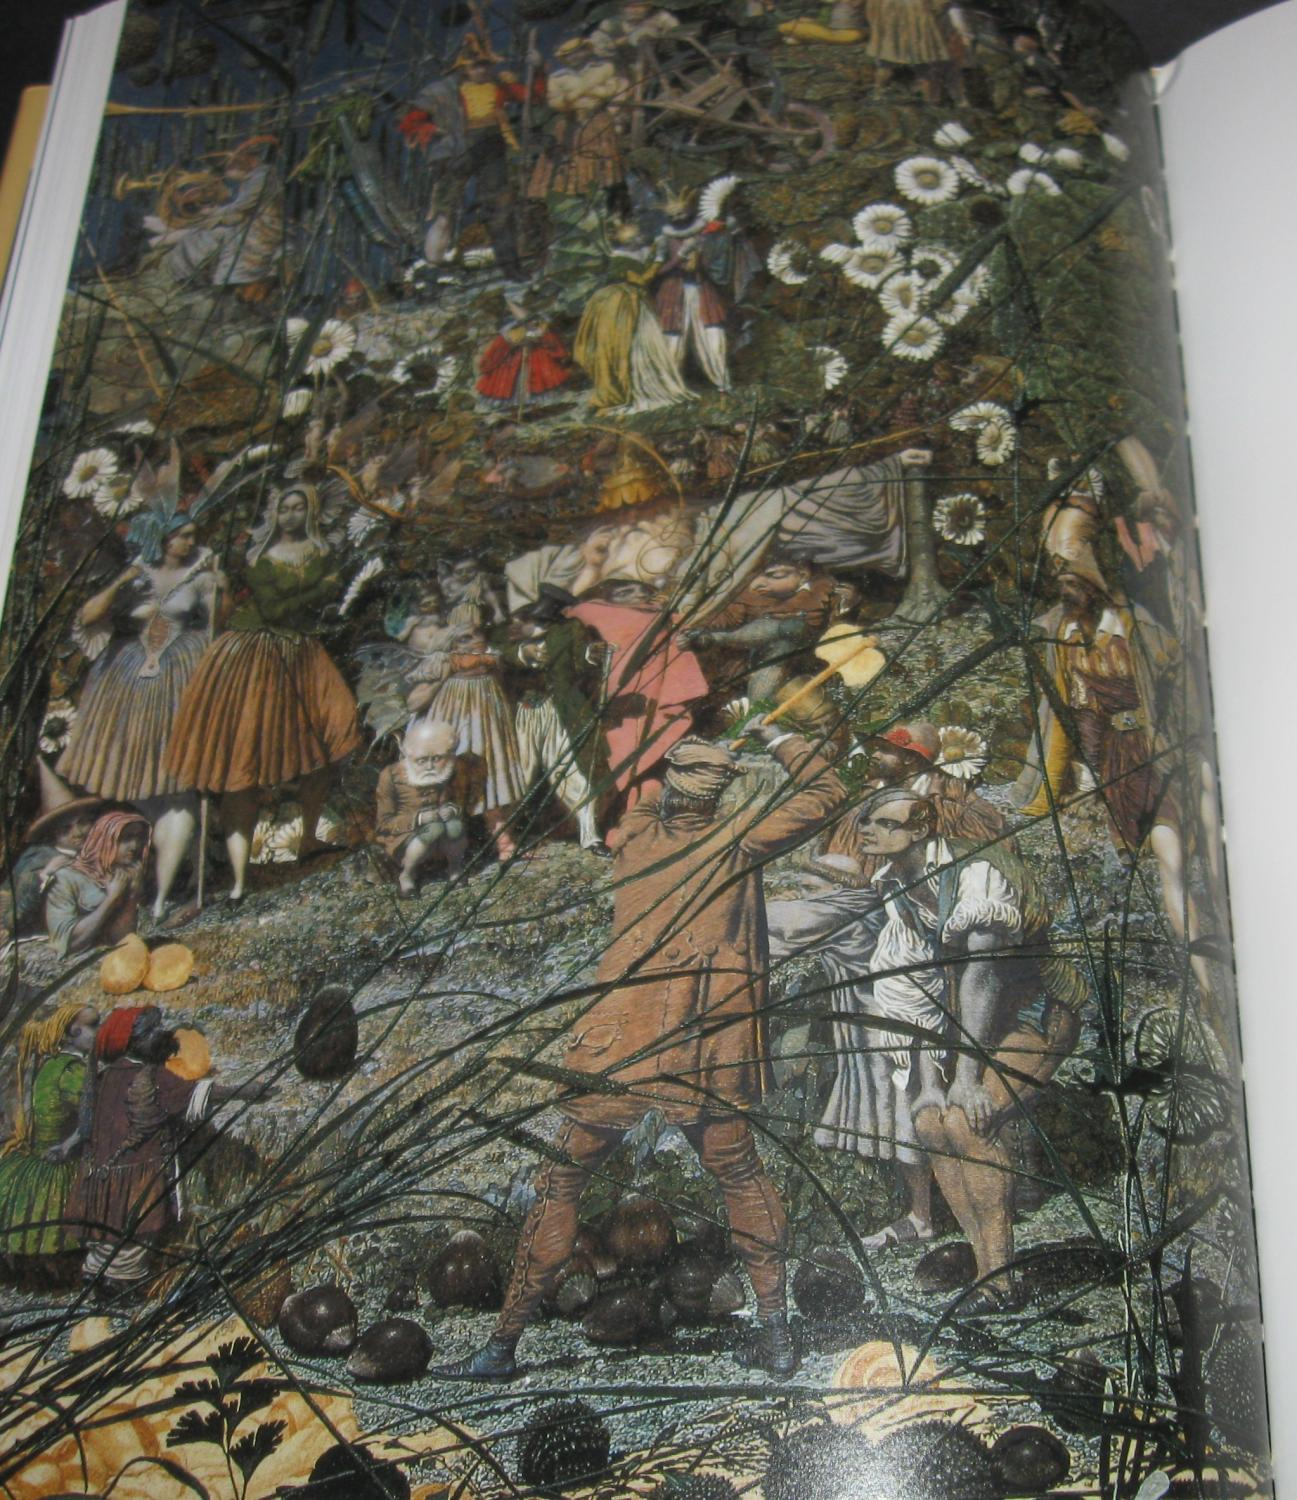 the little people stories of fairies pixies and other small